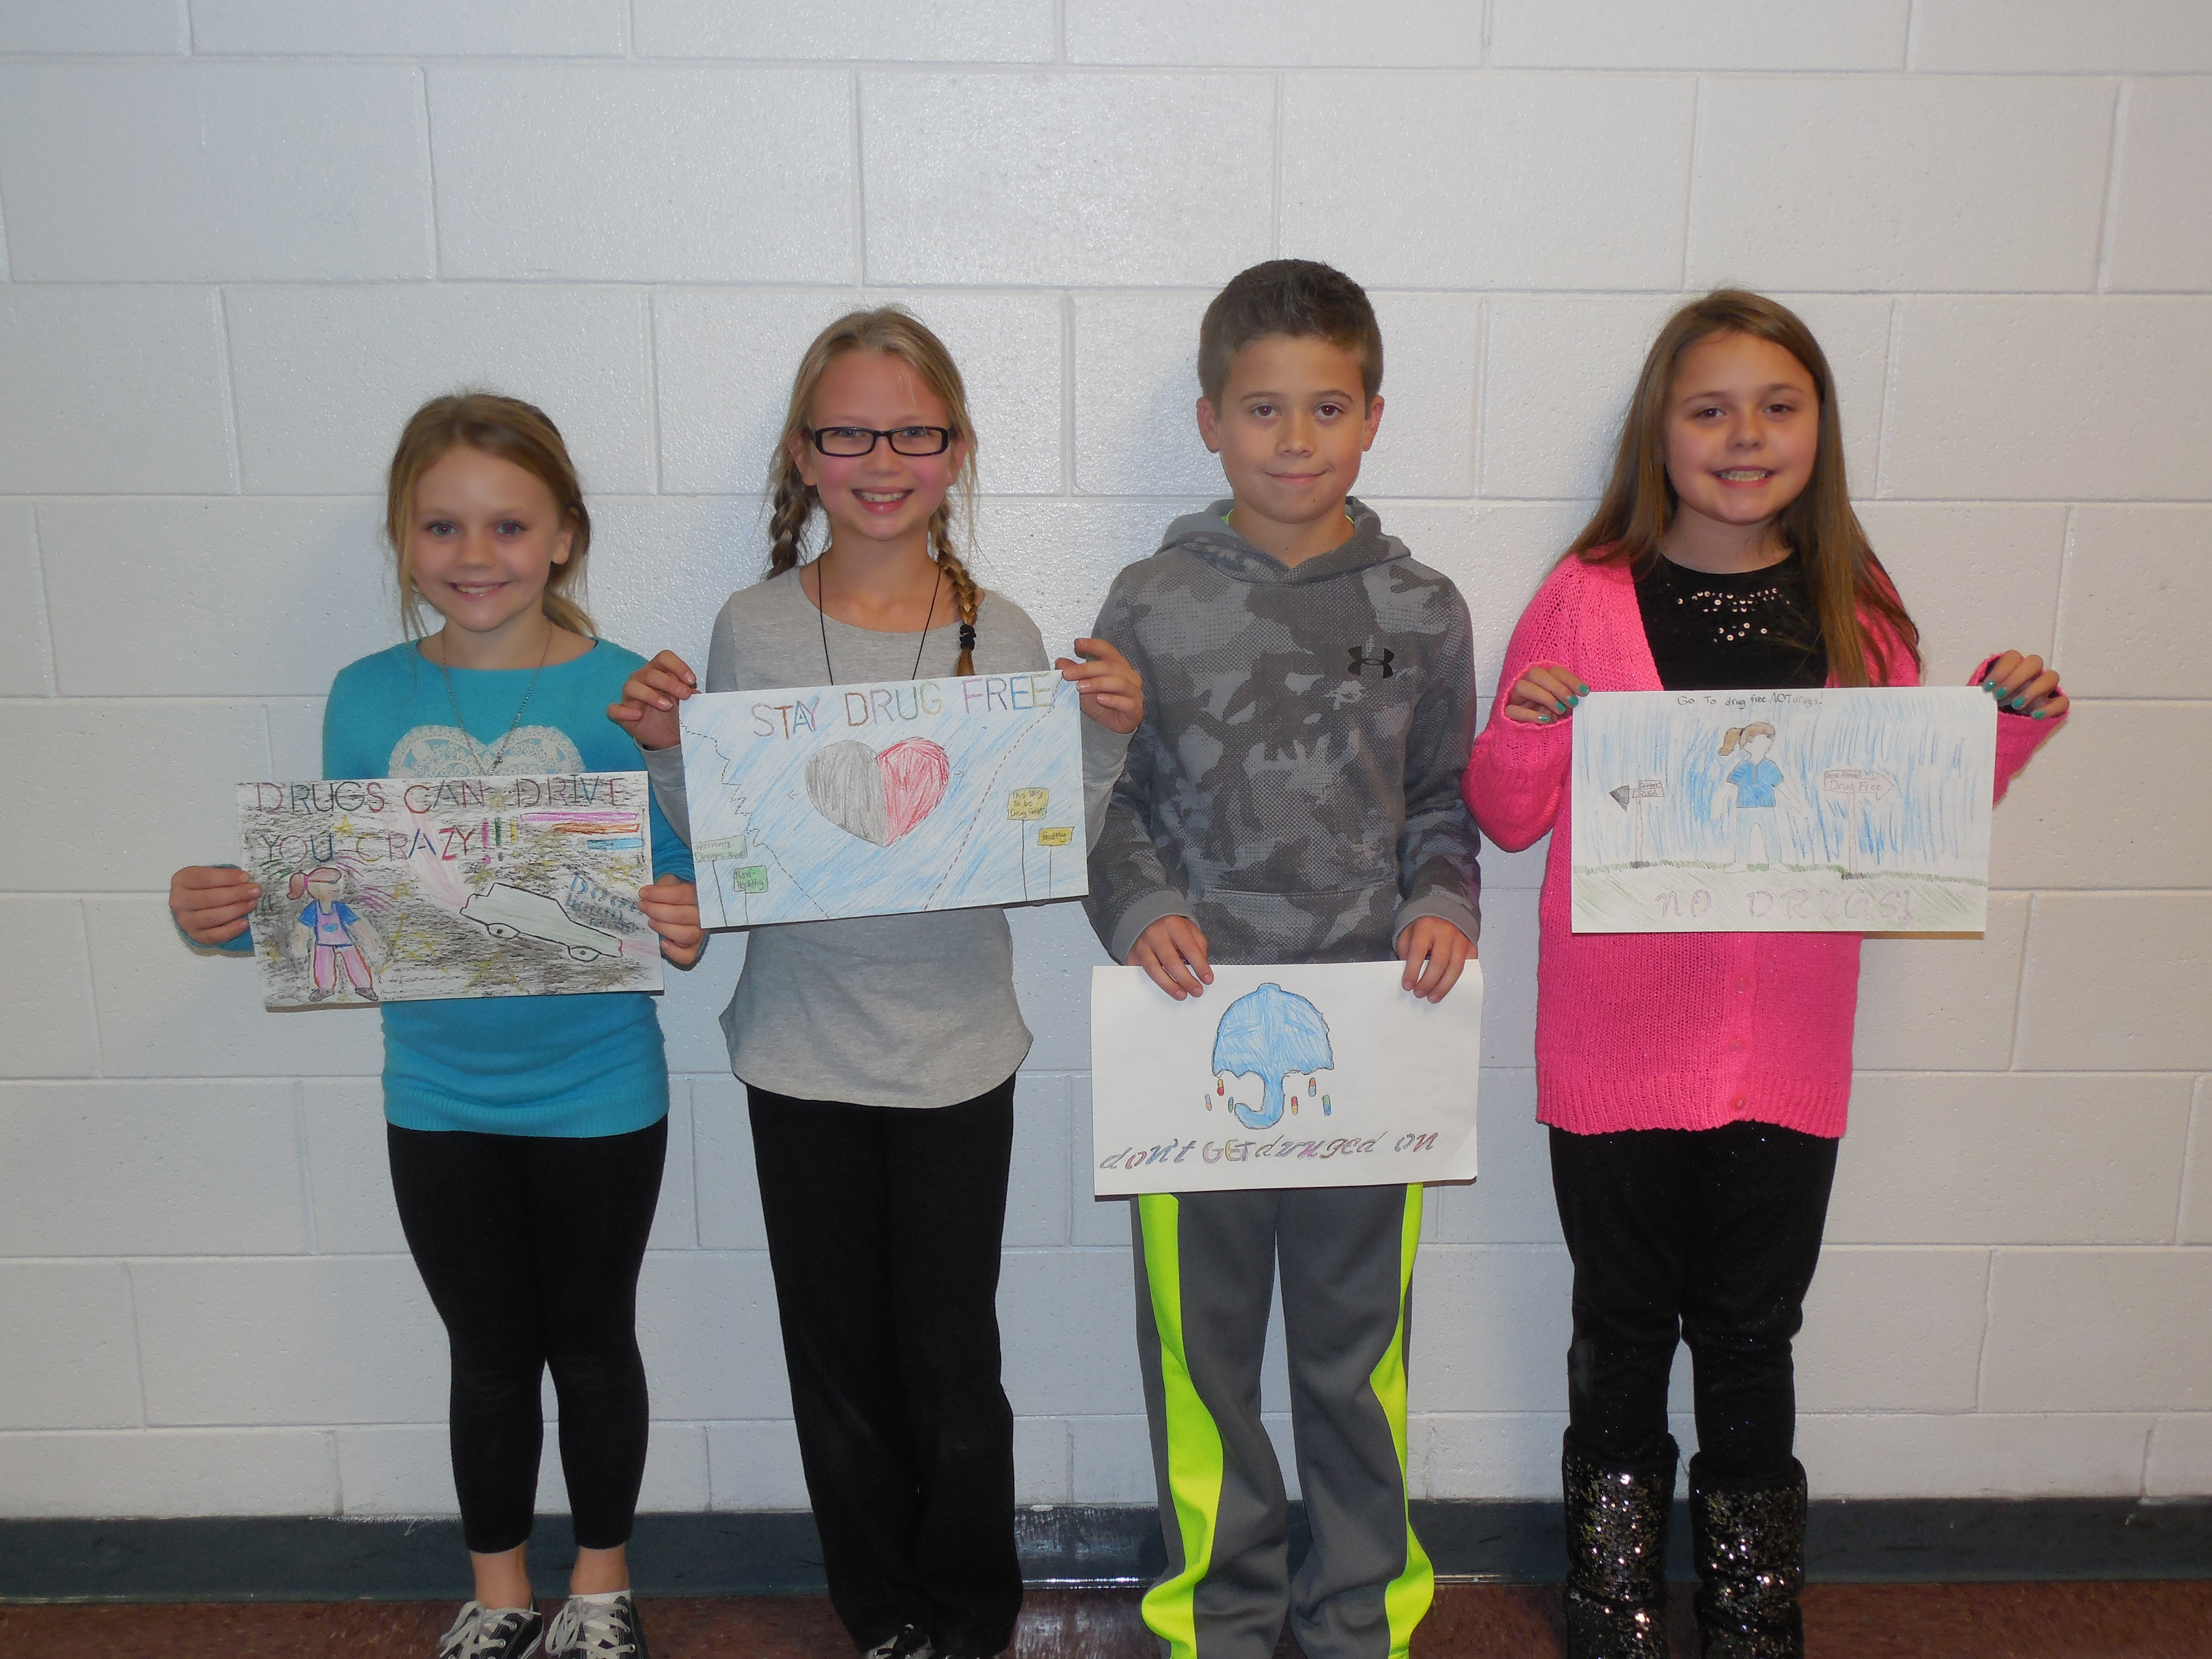 During Red Ribbon Week at Clinton County Middle School, students celebrated being drug-free with several contests, sponsored by the Youth Services Center.